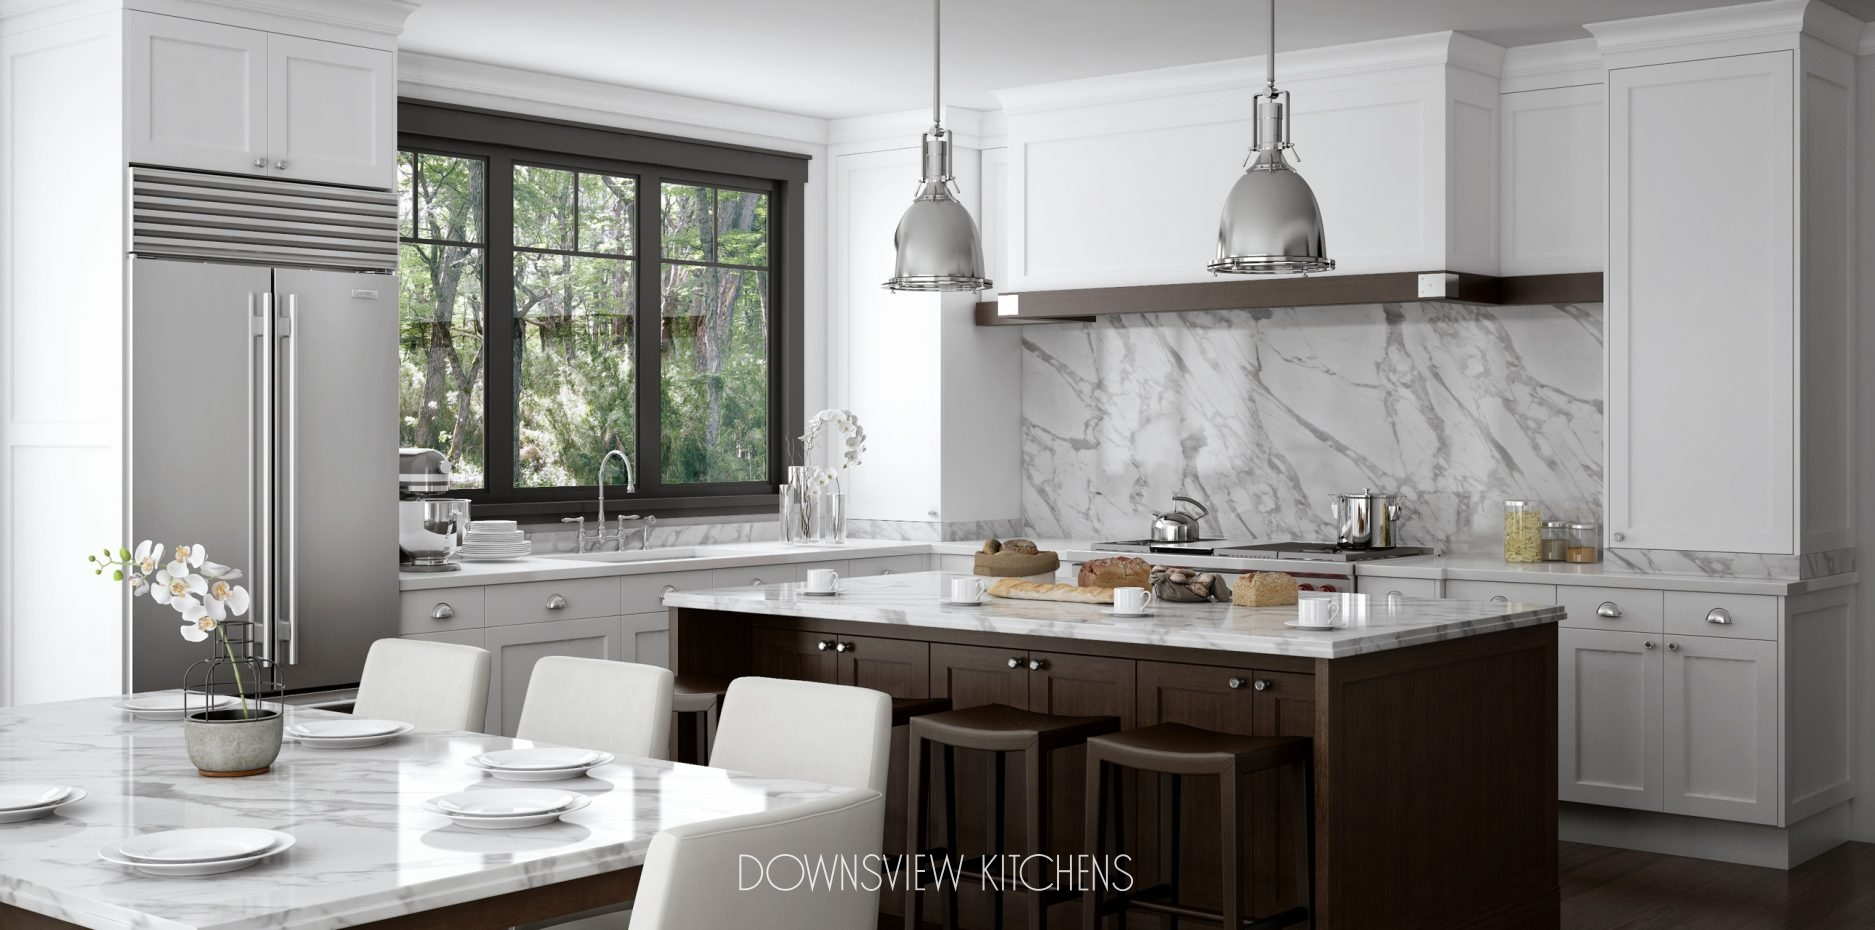 Functional Aesthetic Downsview Kitchens And Fine Custom